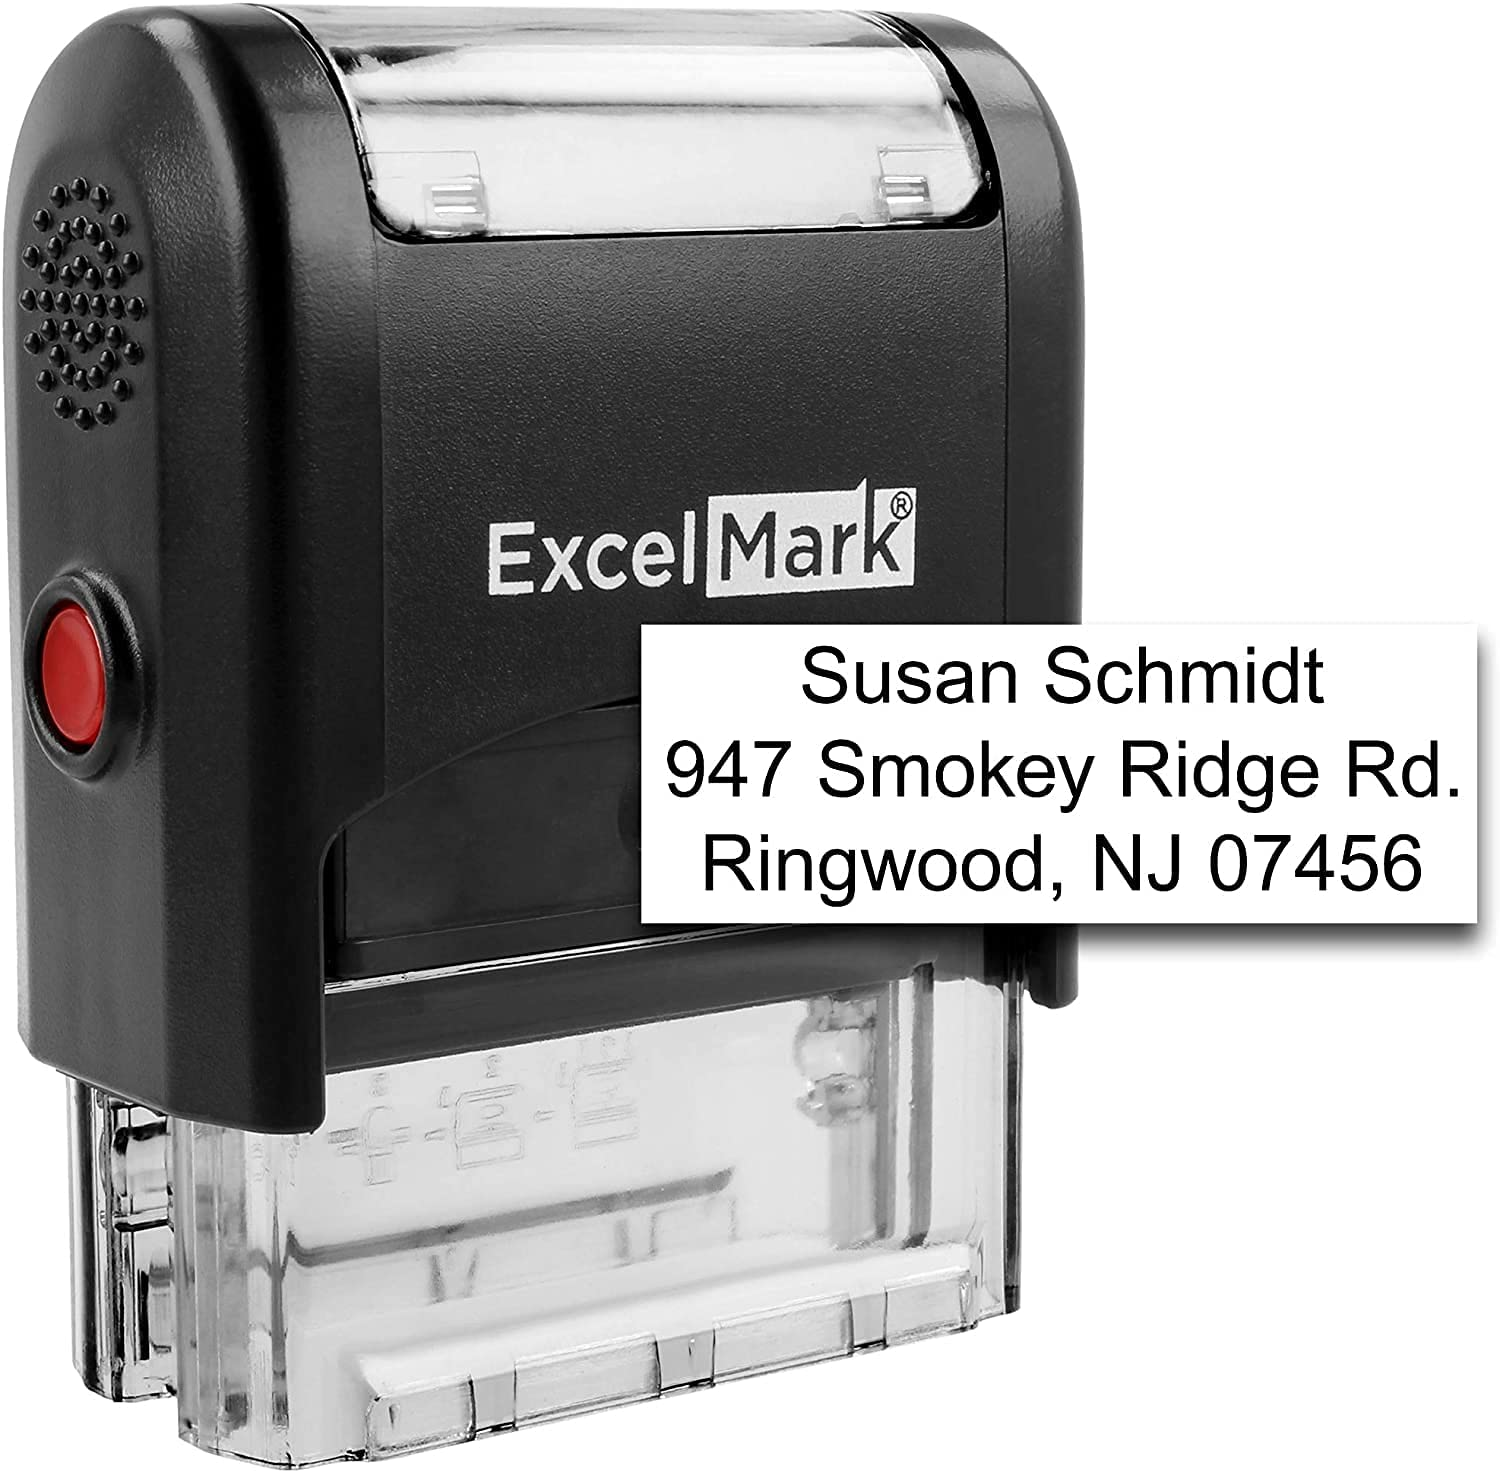 A-5313 StampExpression Red Ink INACTIVE Office Self Inking Rubber Stamp